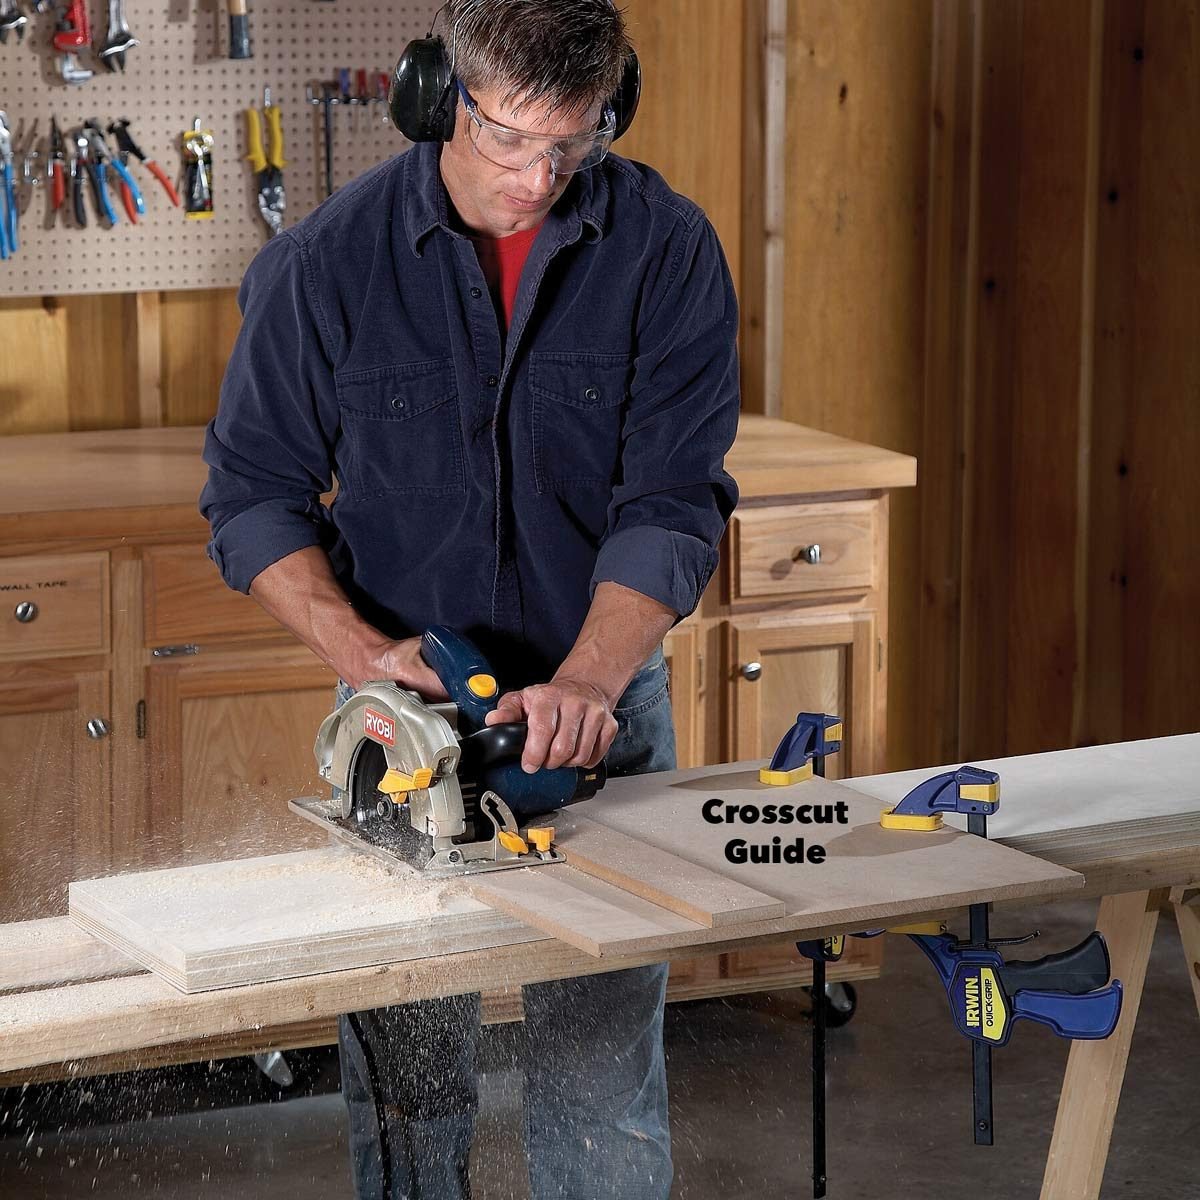 Box Diy Shelves The Family Handyman Ceiling Fan Wiring Diagram Blue Wire Sawing With A Guide